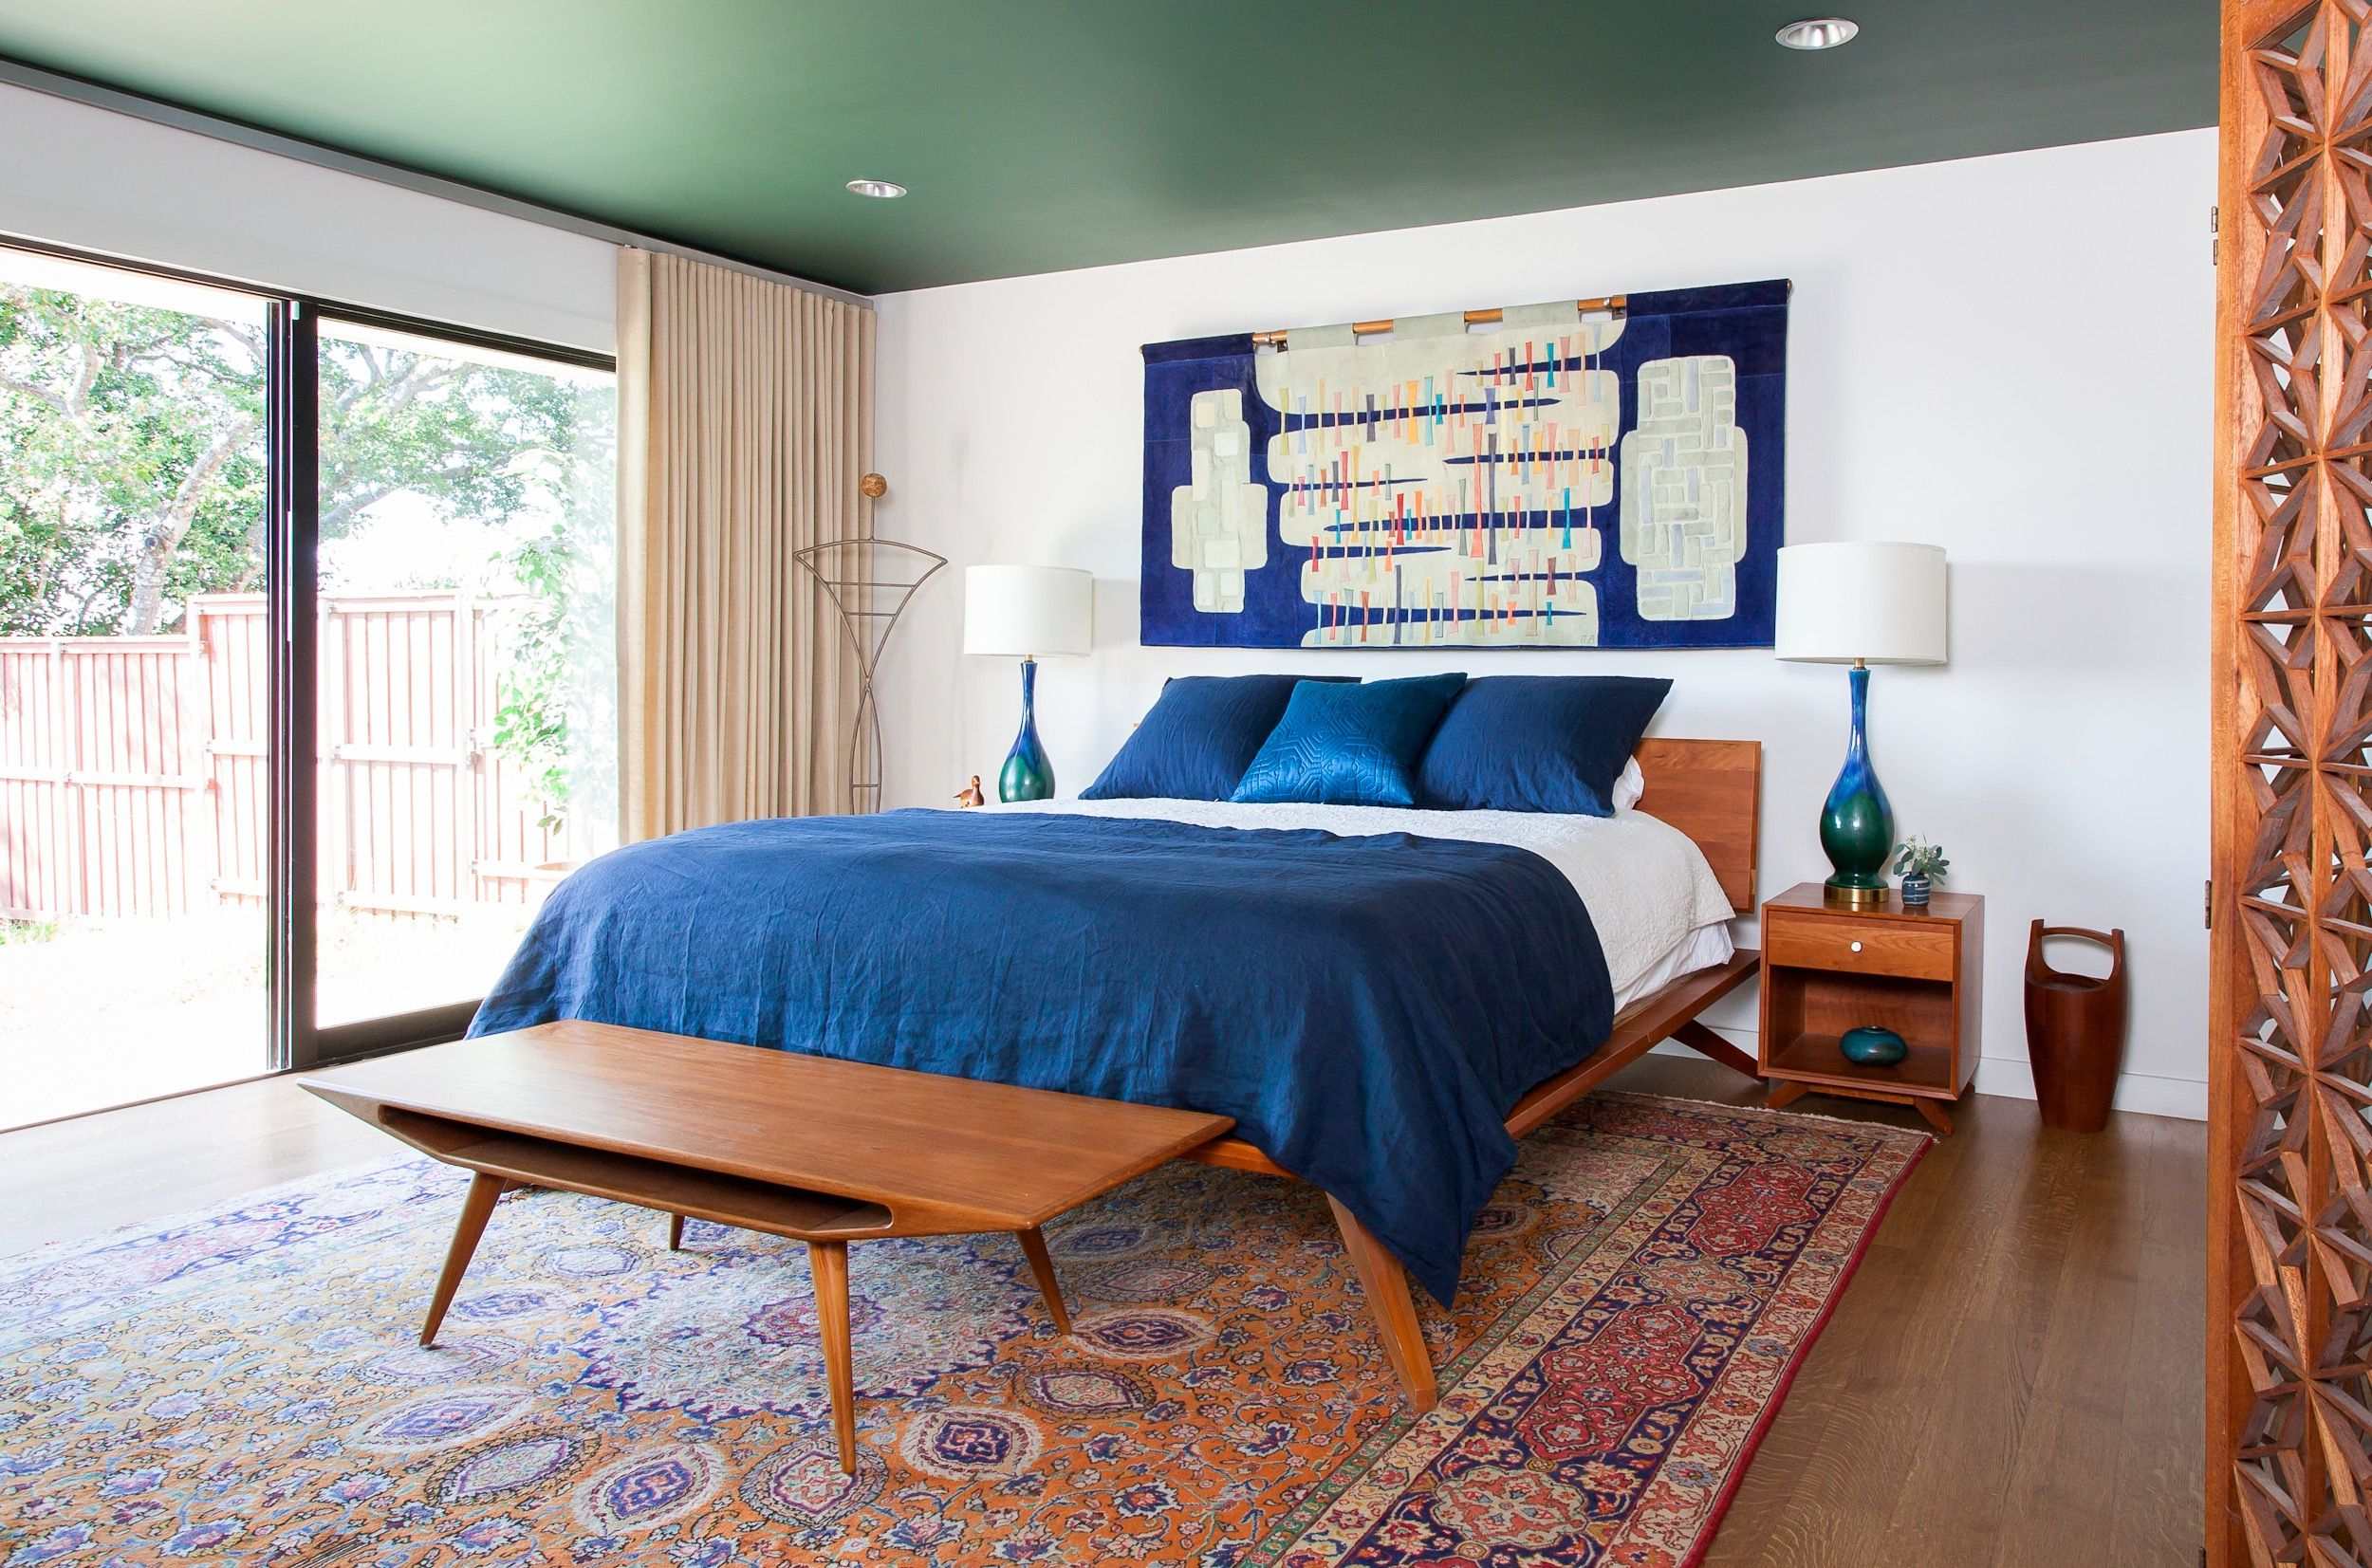 industrial bedroom furniture melbourne%0A Midcentury Modern Master Bedroom with New Modern Furniture and Persian Rug